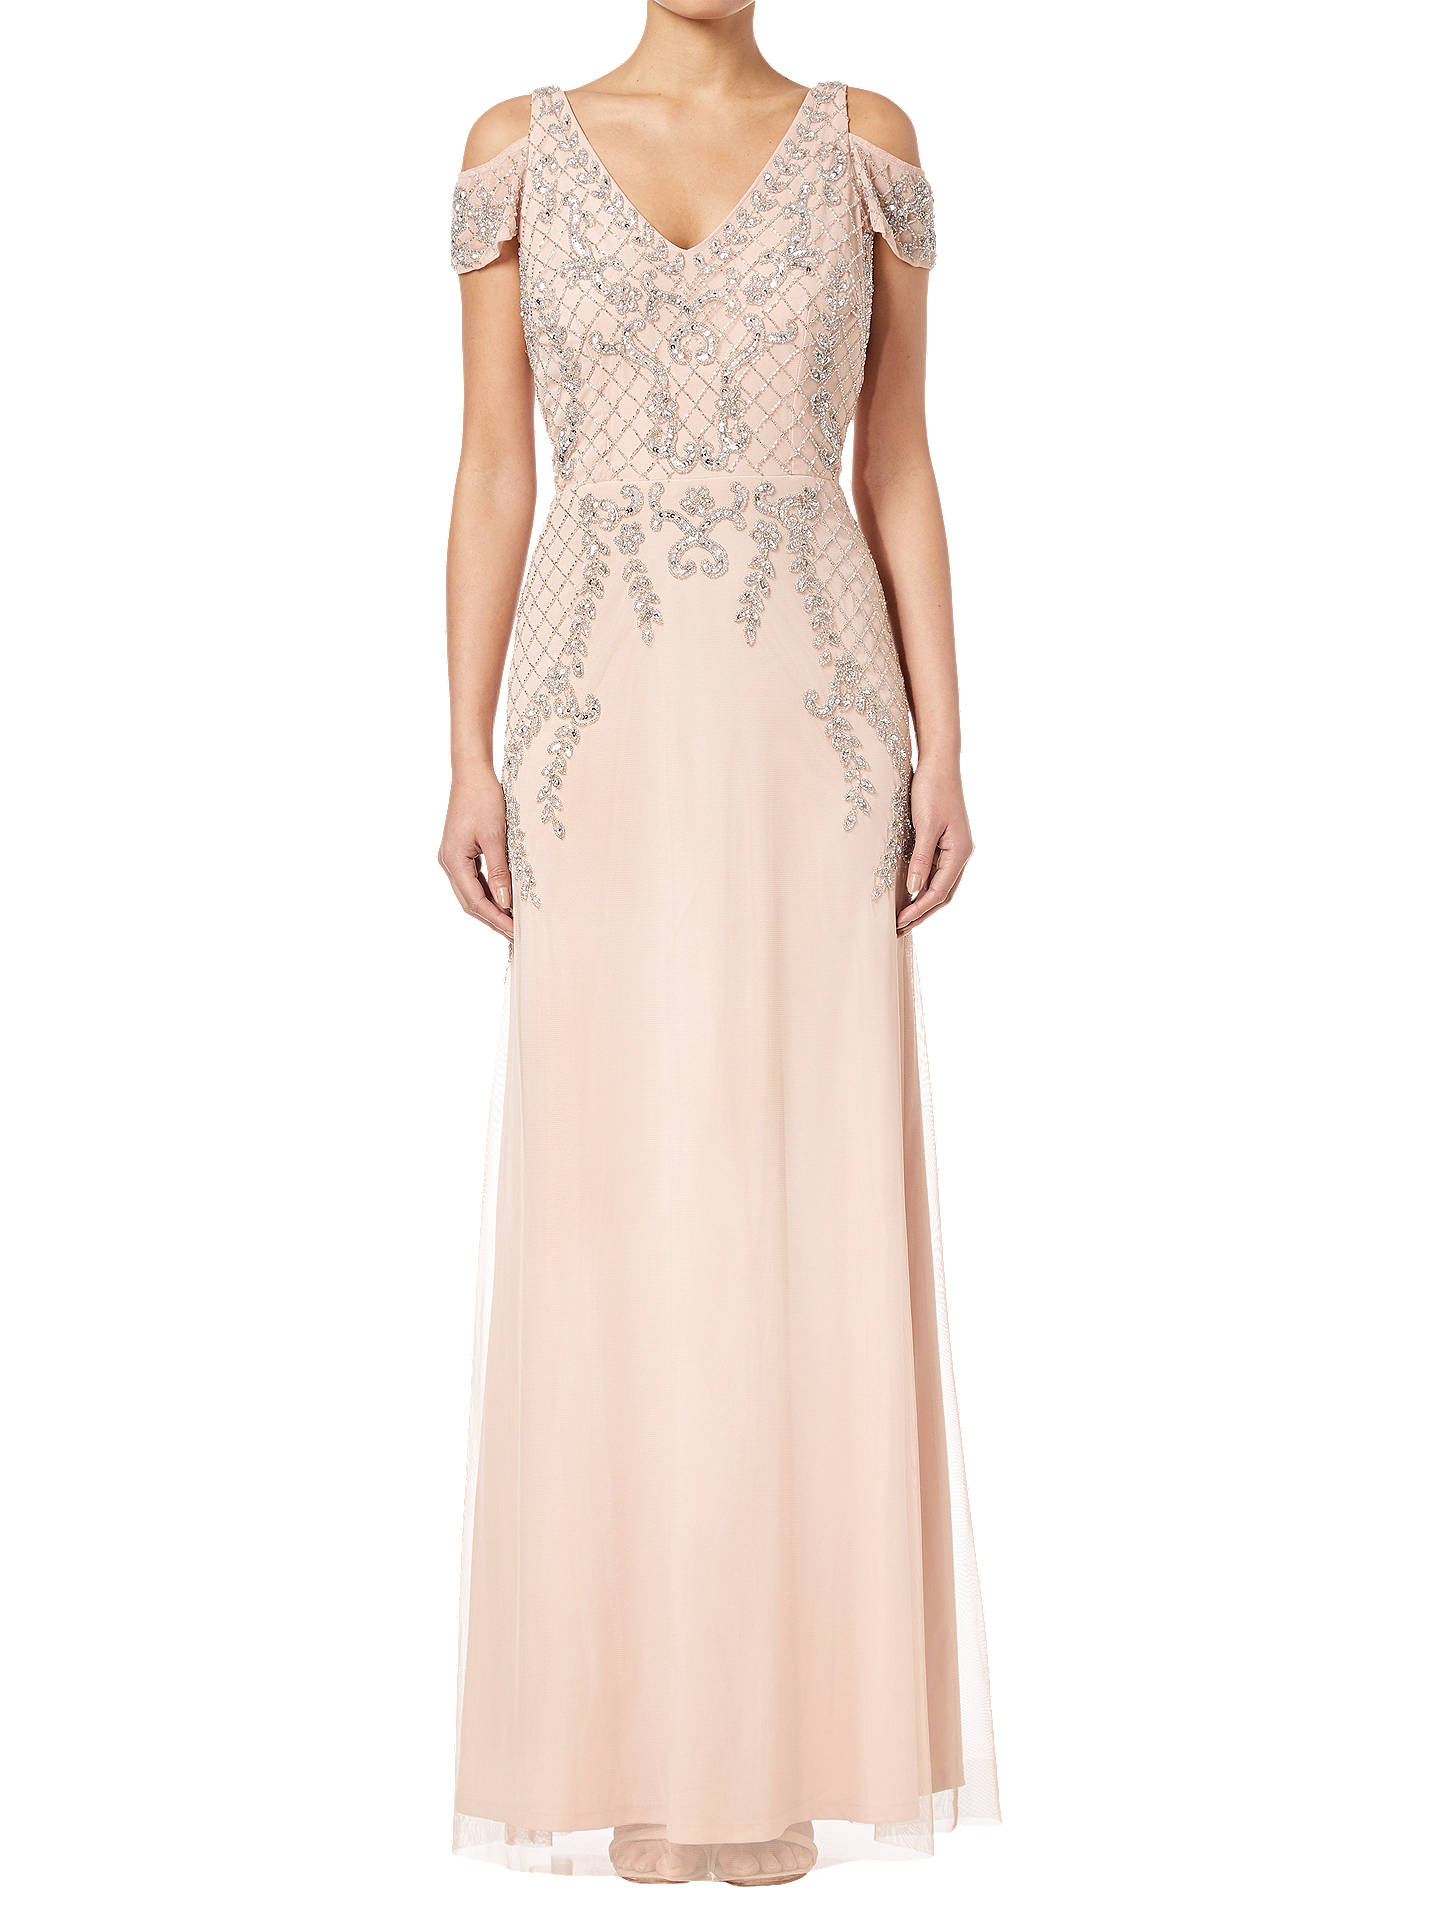 BuyAdrianna Papell Beaded Long Dress, Blush, 12 Online at johnlewis.com